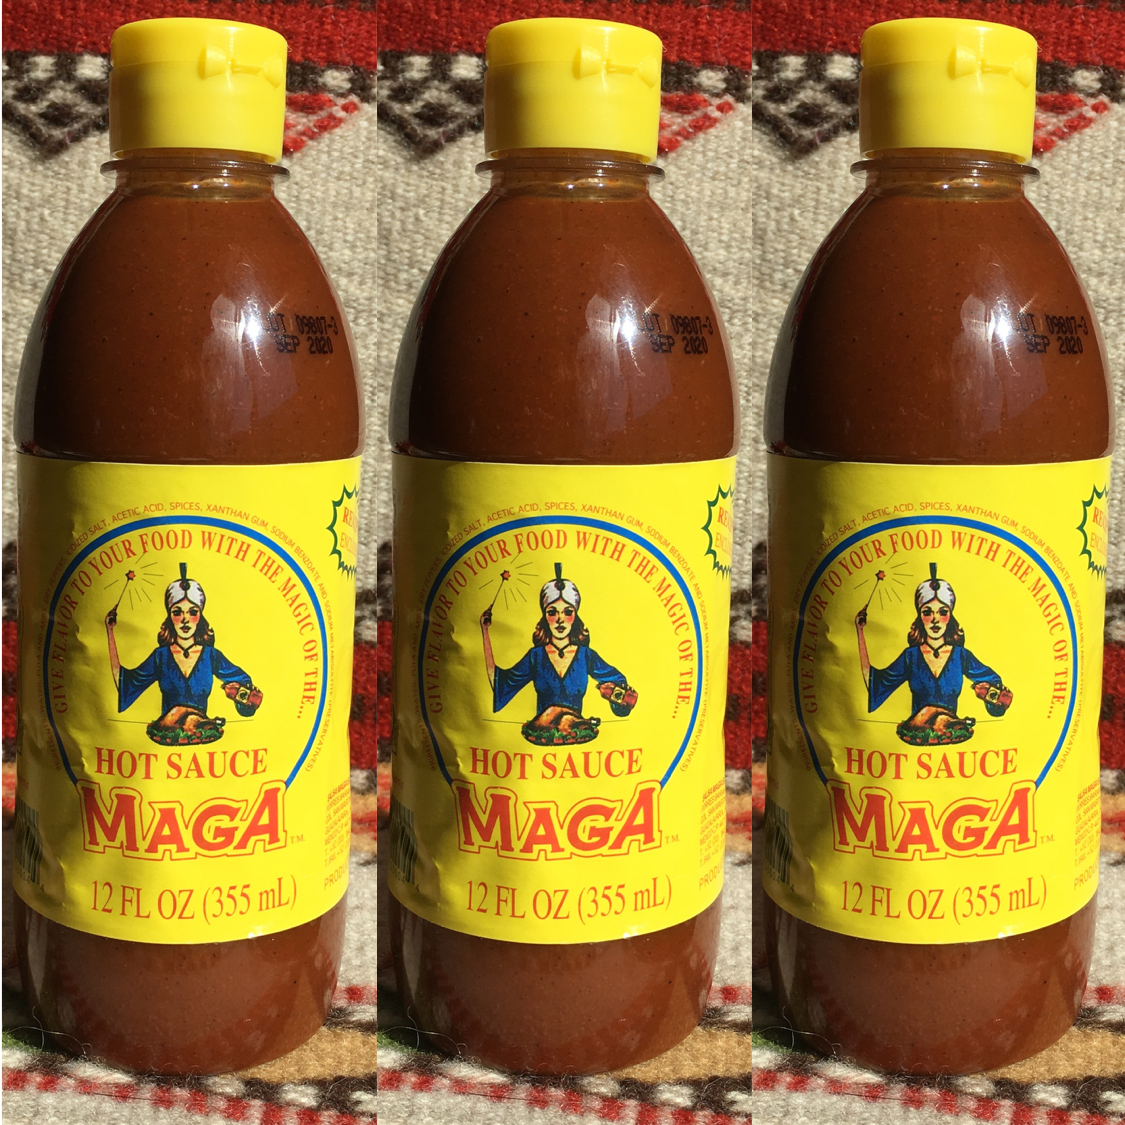 3 Bottles MAGA Hot Sauce from Mexico ~ Authentic Mexican Salsa MAGA #authenticmexicansalsa 3 Bottles MAGA Hot Sauce from Mexico ~ Authentic Mexican Salsa MAGA #authenticmexicansalsa